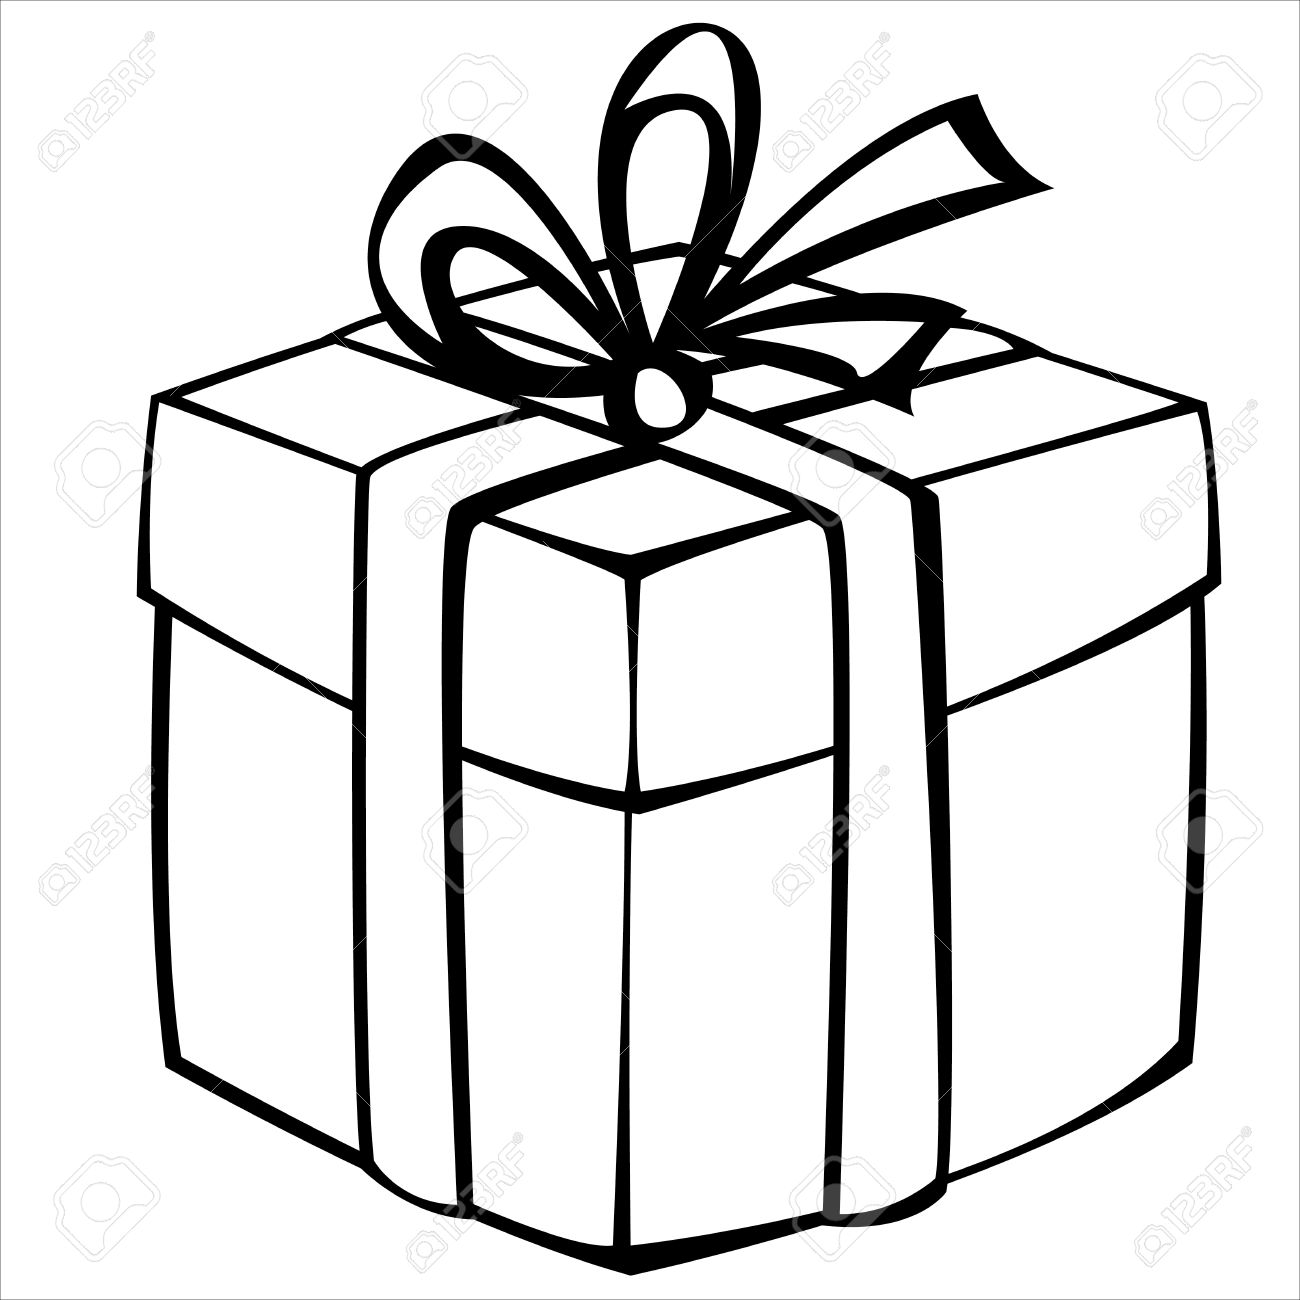 Gift box drawing at getdrawings free for personal use gift box 1300x1300 gift box isolated on white background royalty free cliparts negle Choice Image